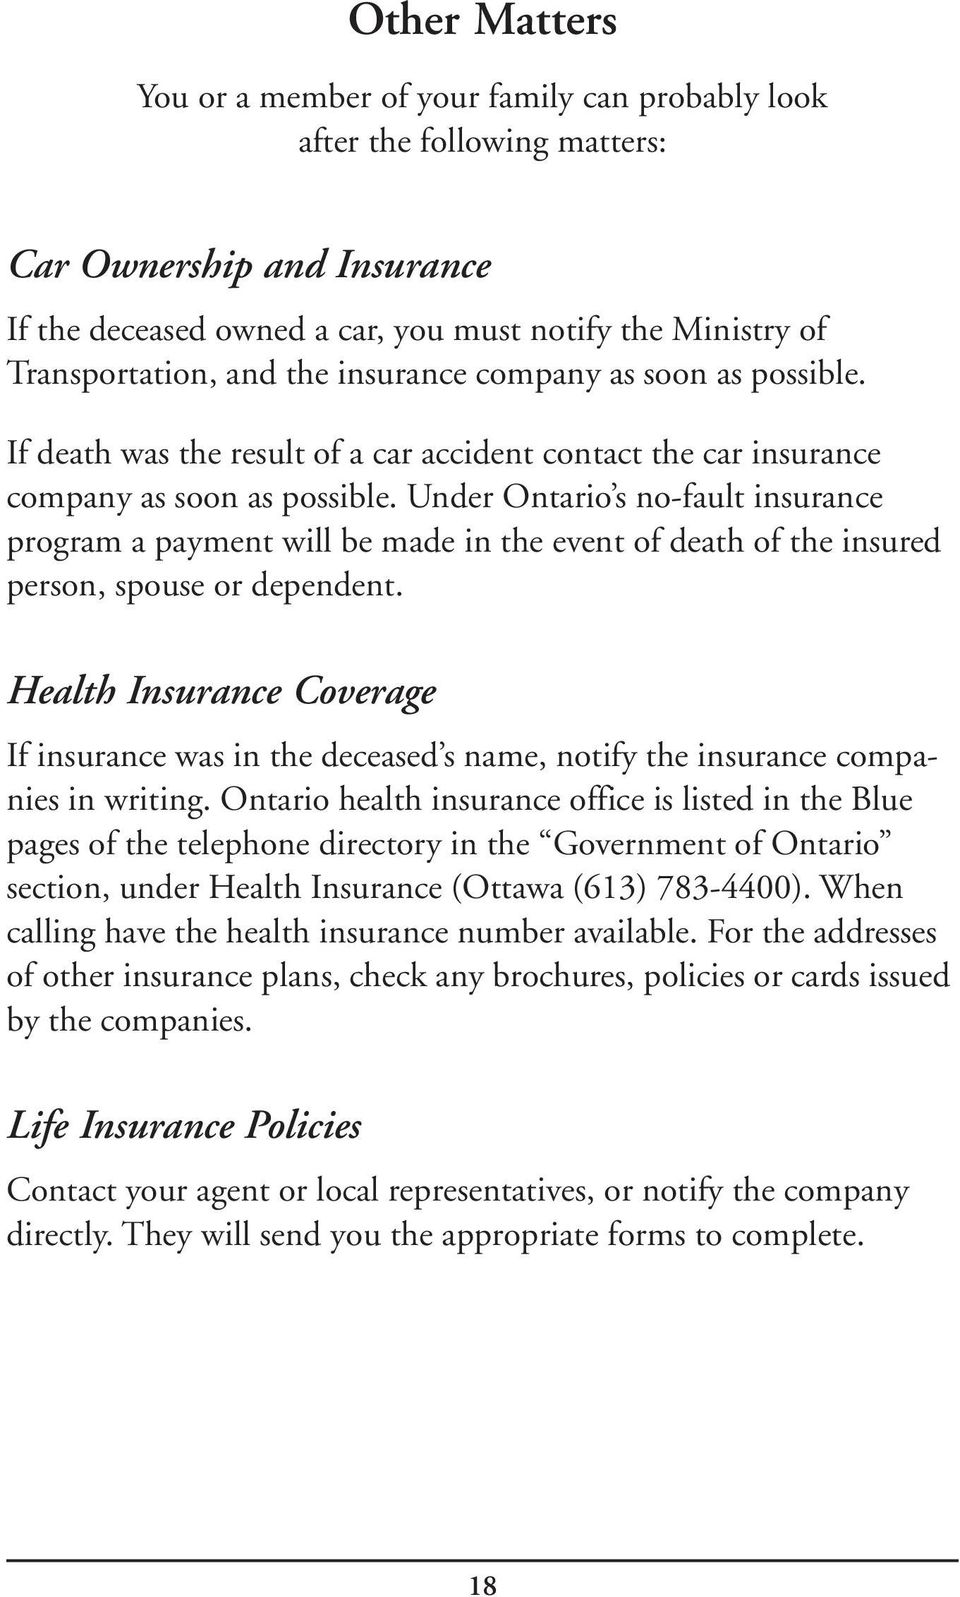 Under Ontario s no-fault insurance program a payment will be made in the event of death of the insured person, spouse or dependent.